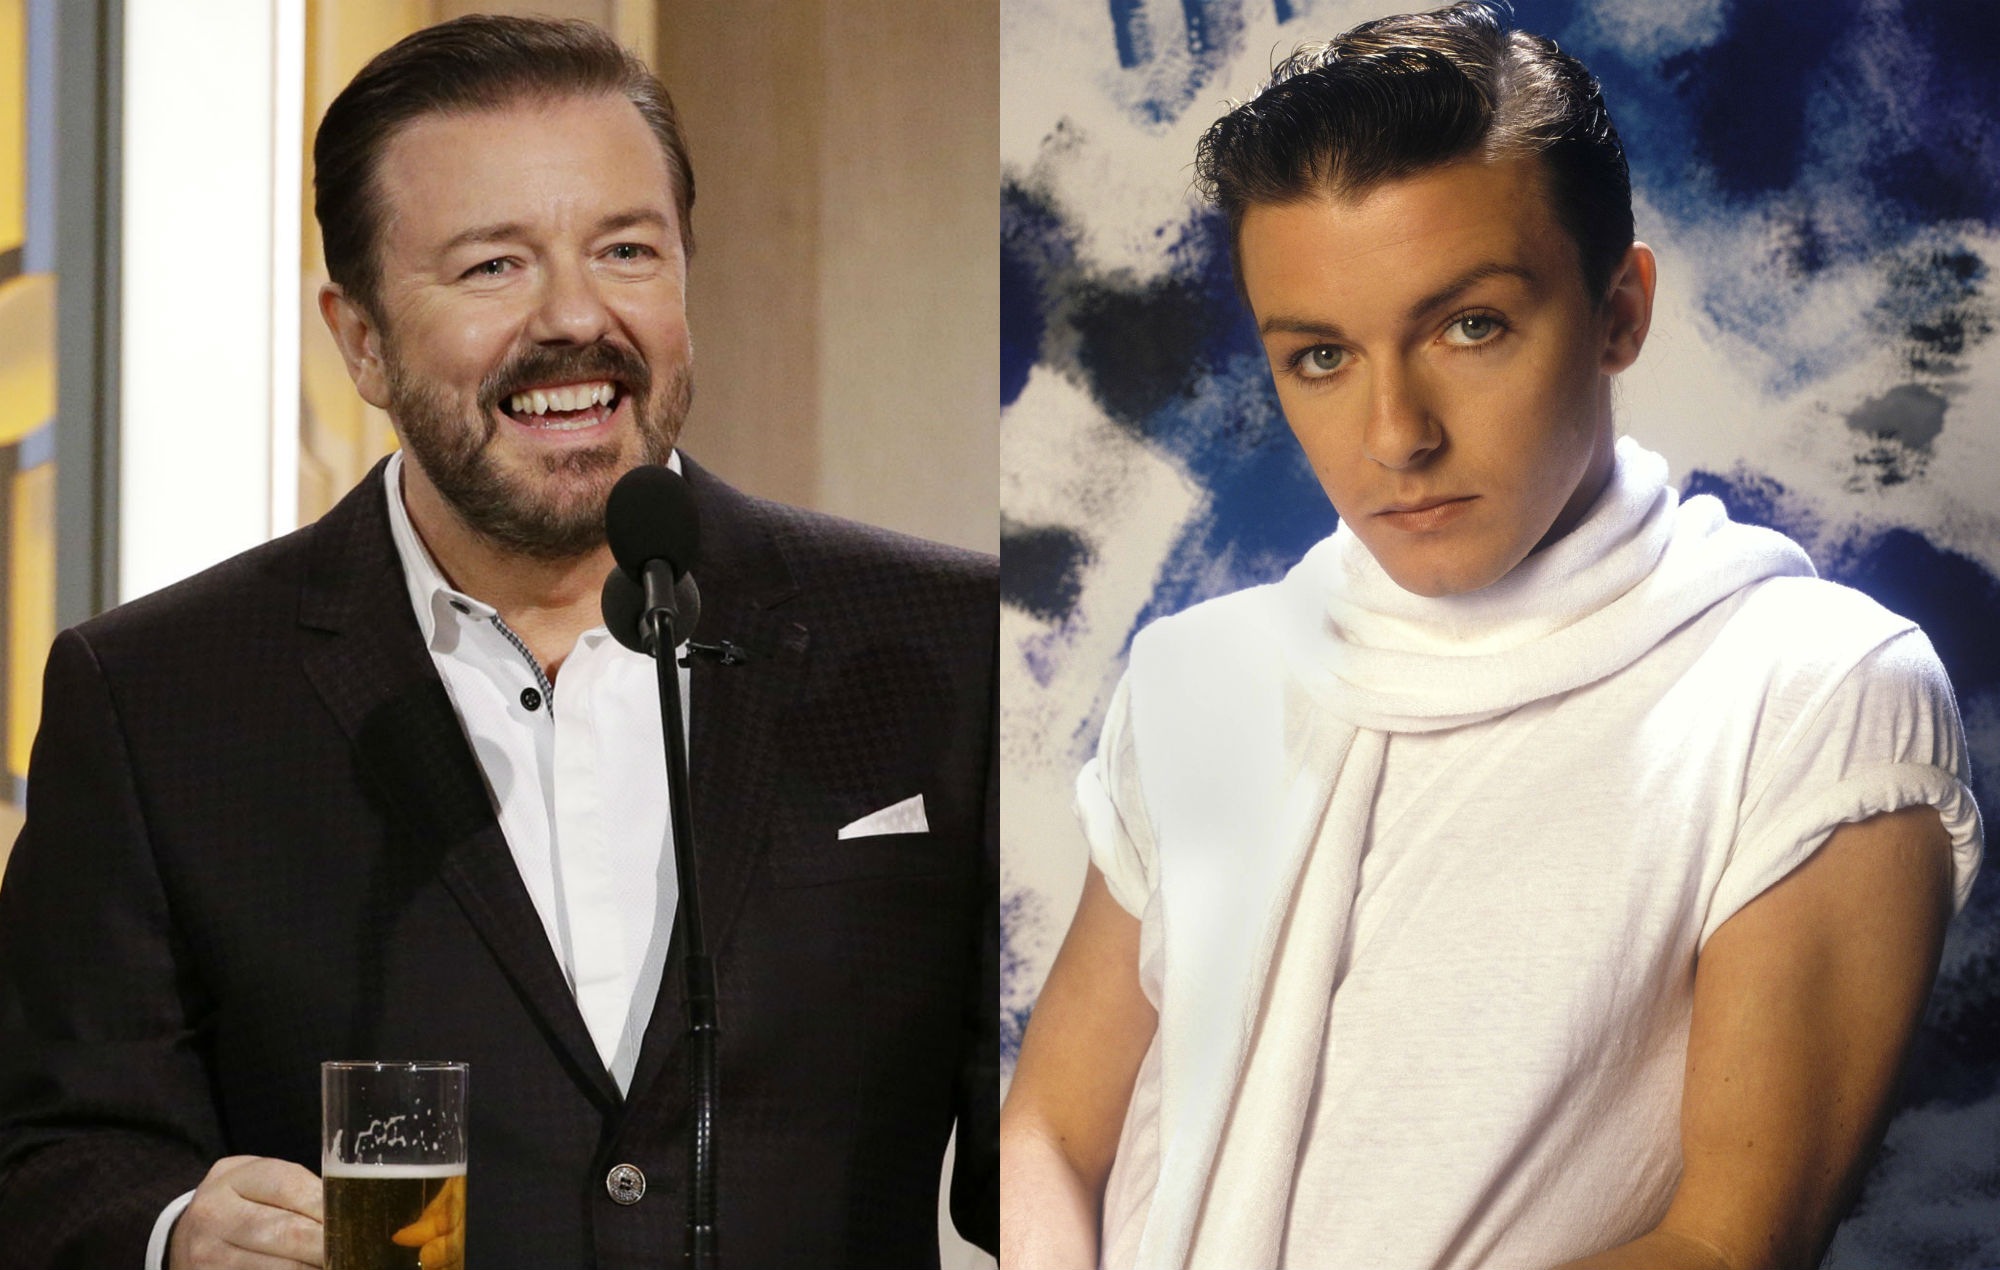 Ricky Gervais, today and in 1983